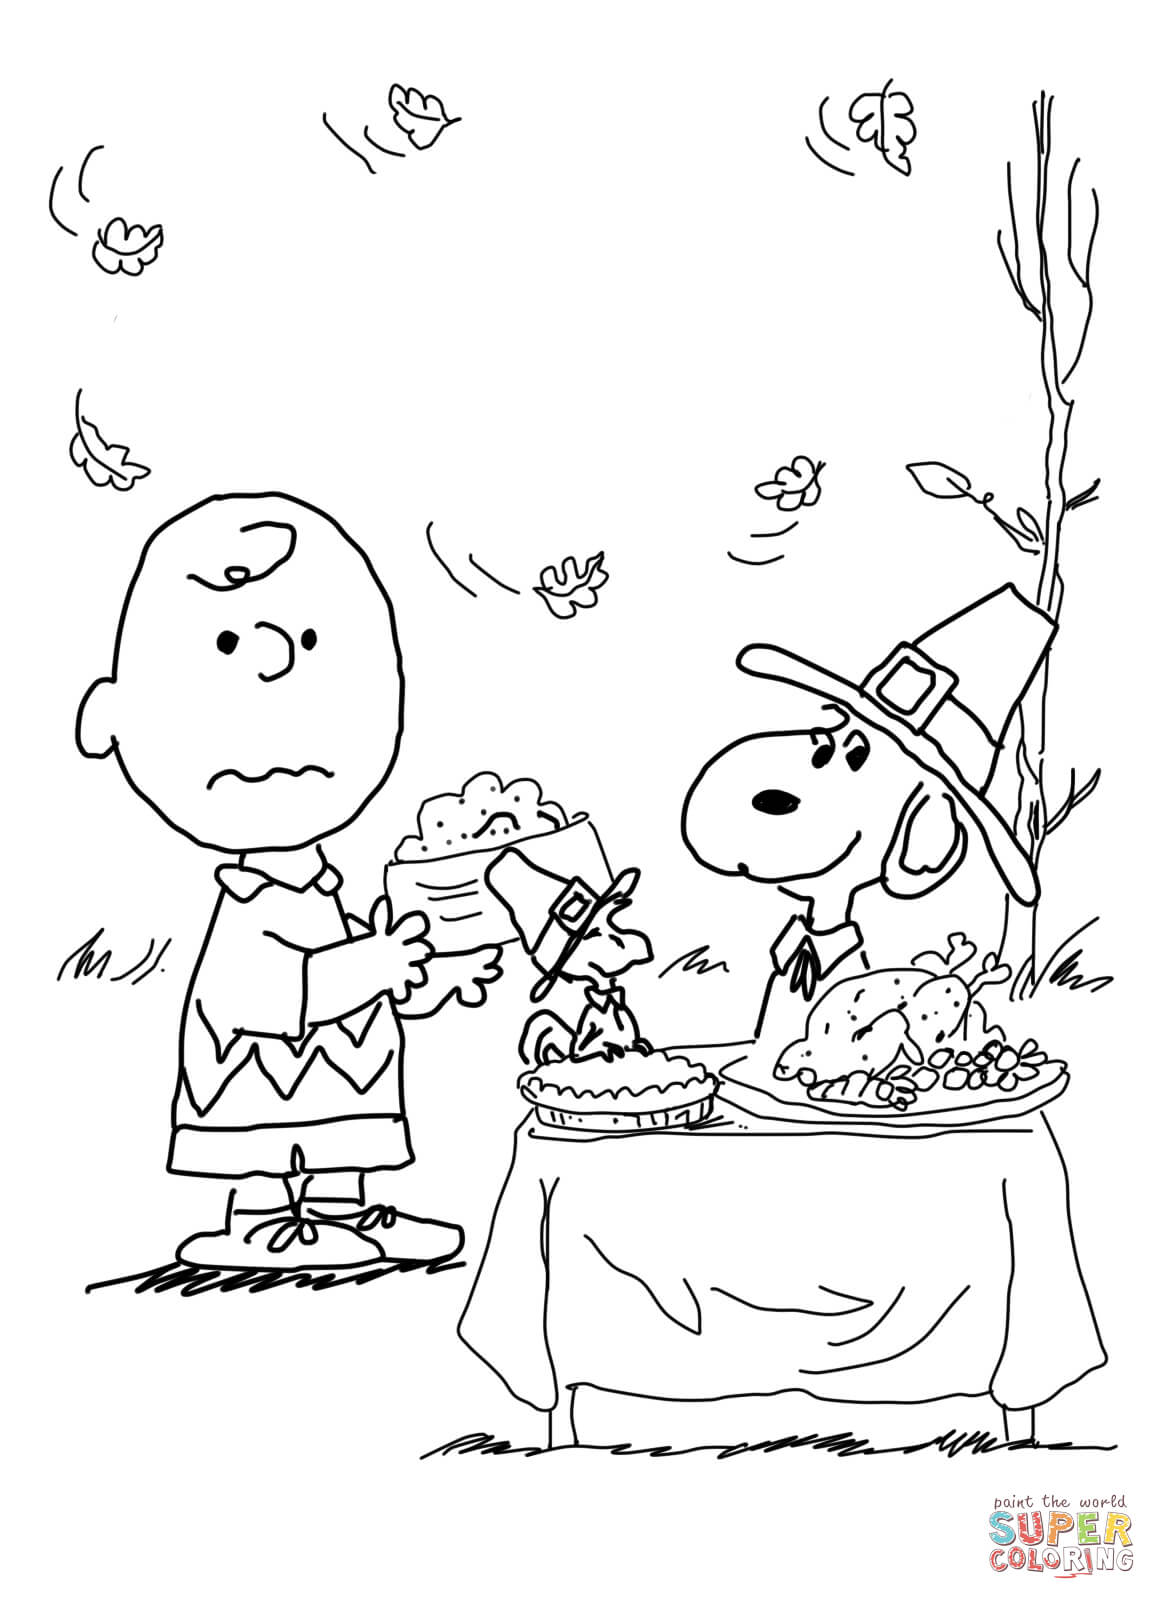 charlie brown thanksgiving coloring pages to print printable thanksgiving coloring pages for kids cool2bkids pages coloring charlie print thanksgiving brown to